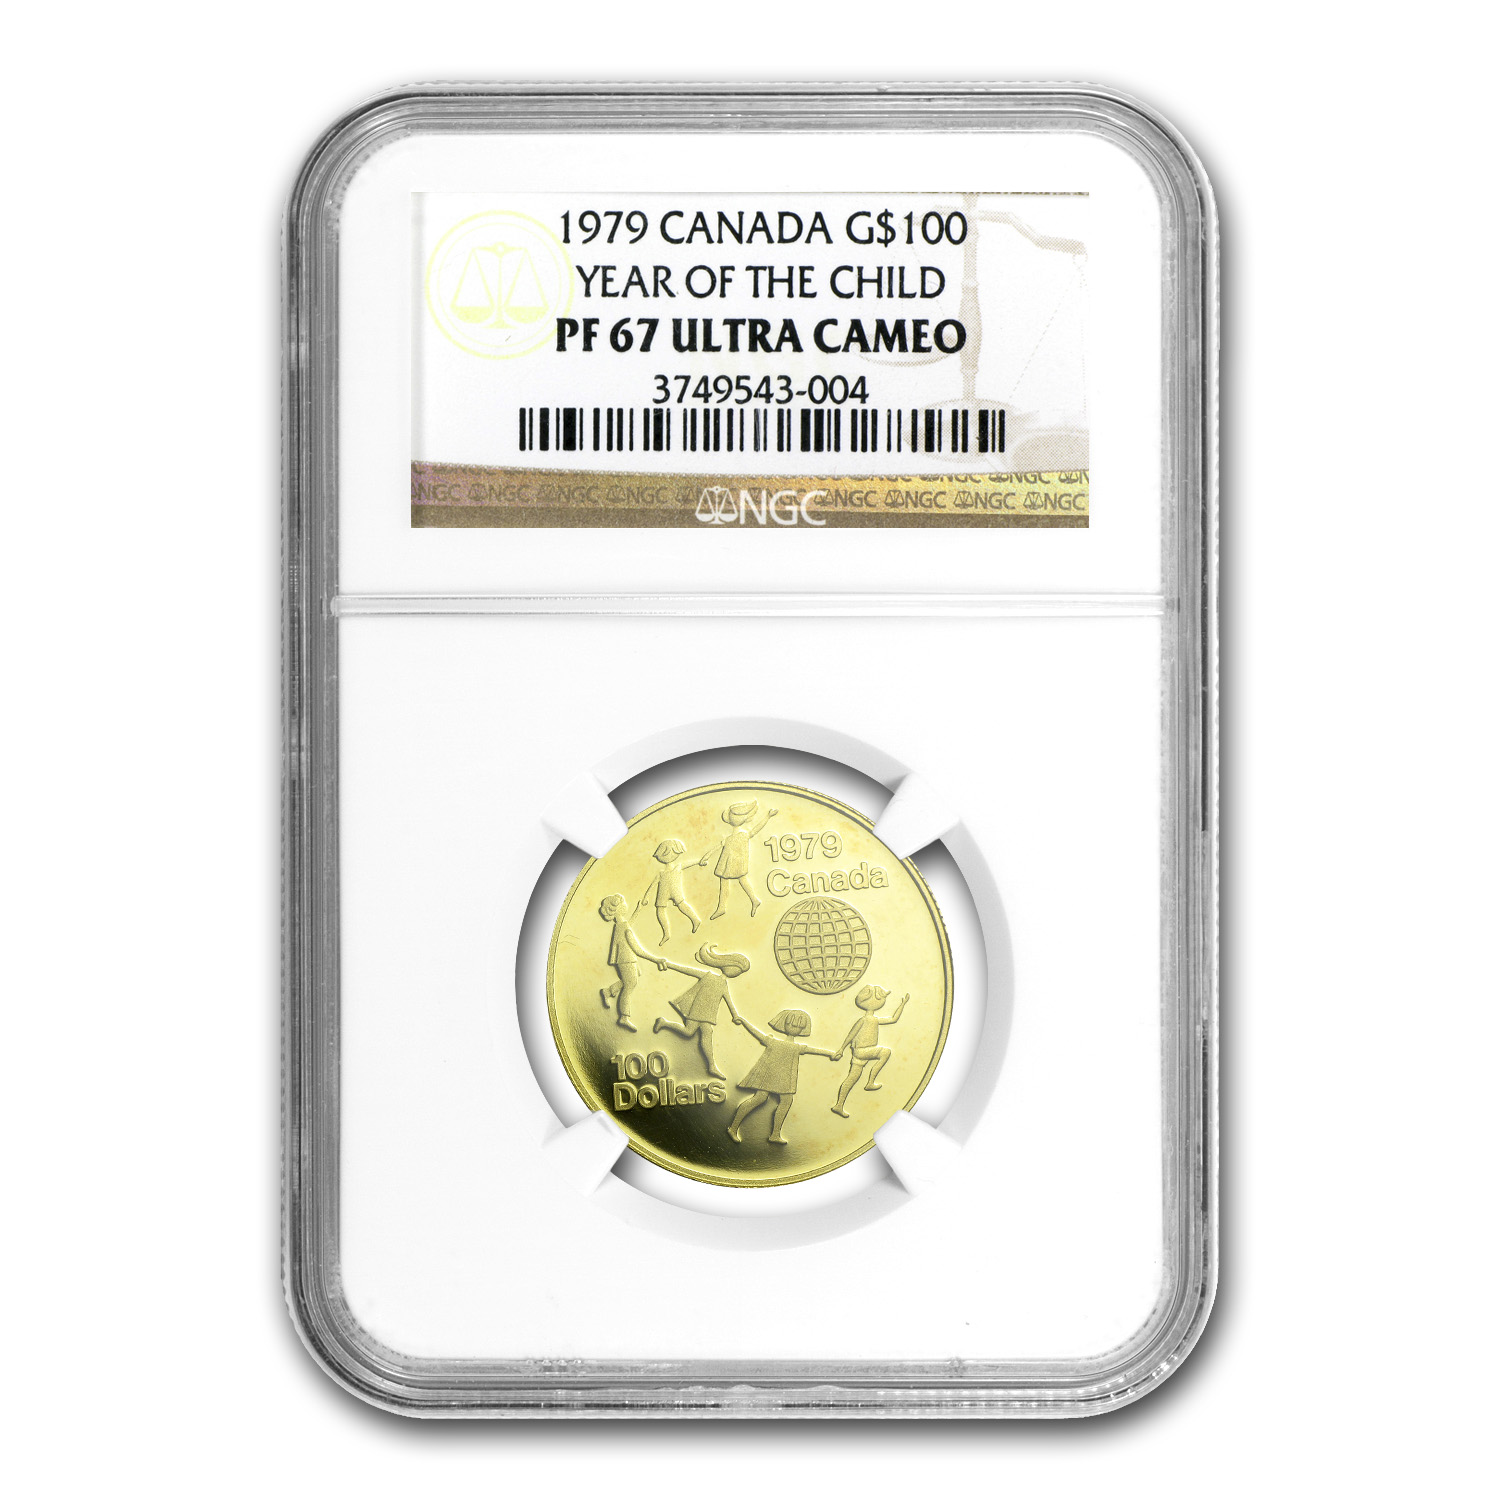 1979 1/2 oz Gold Canadian $100 Year of the Child PF-67 NGC